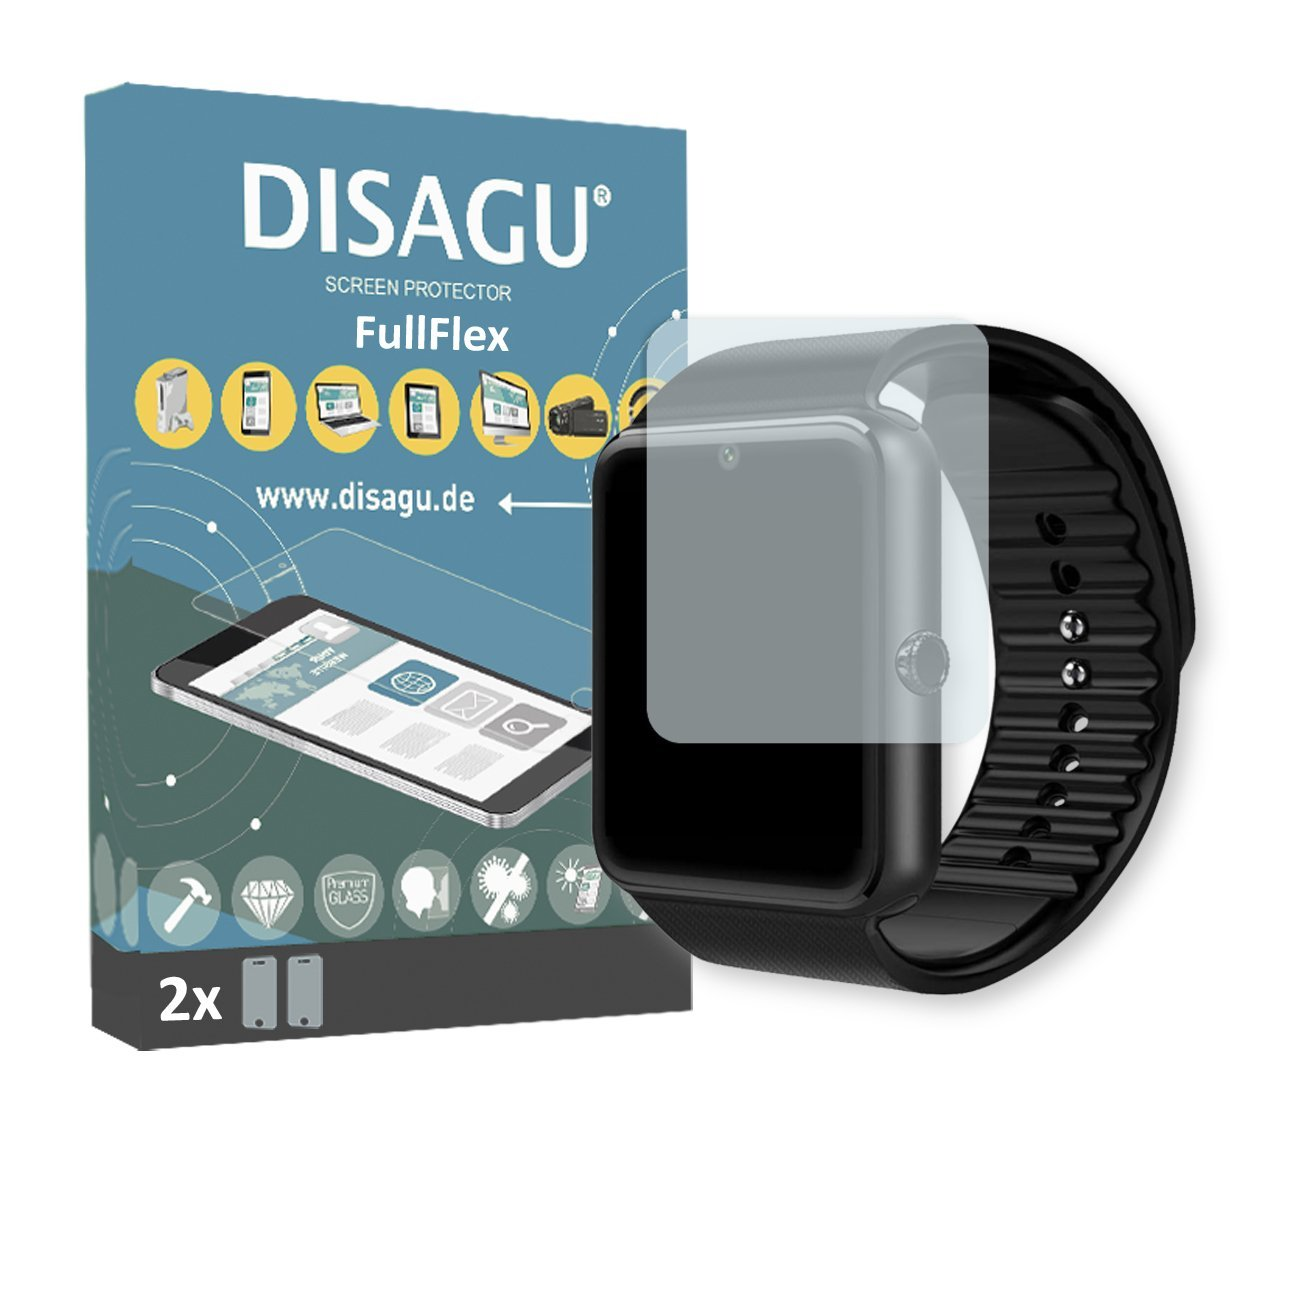 "2 x Disagu FullFlex screen protector for LaTEC 1.54"" Bluetooth Smart Watch foil (screen protector fits accurately on any curved display)"